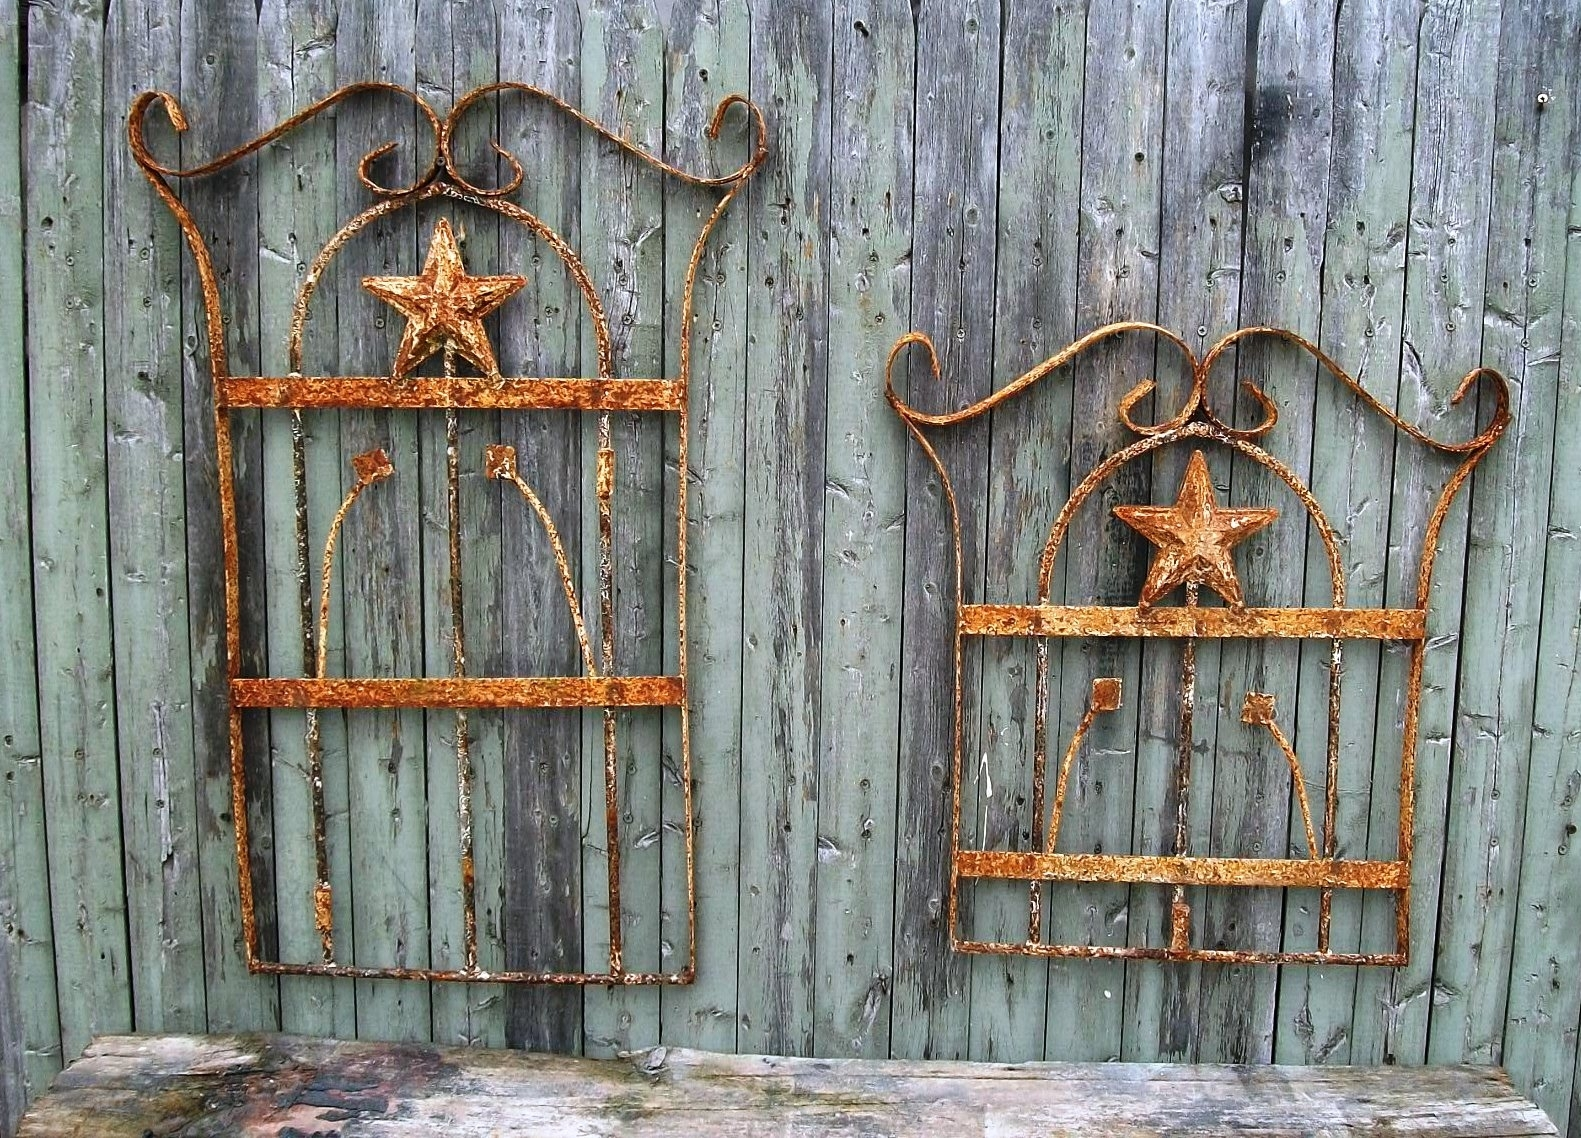 Wrought Iron Garden Decor Wrought Iron Garden Accessories Cape Town Within Most Up To Date Outdoor Wall Art Decors (View 19 of 20)